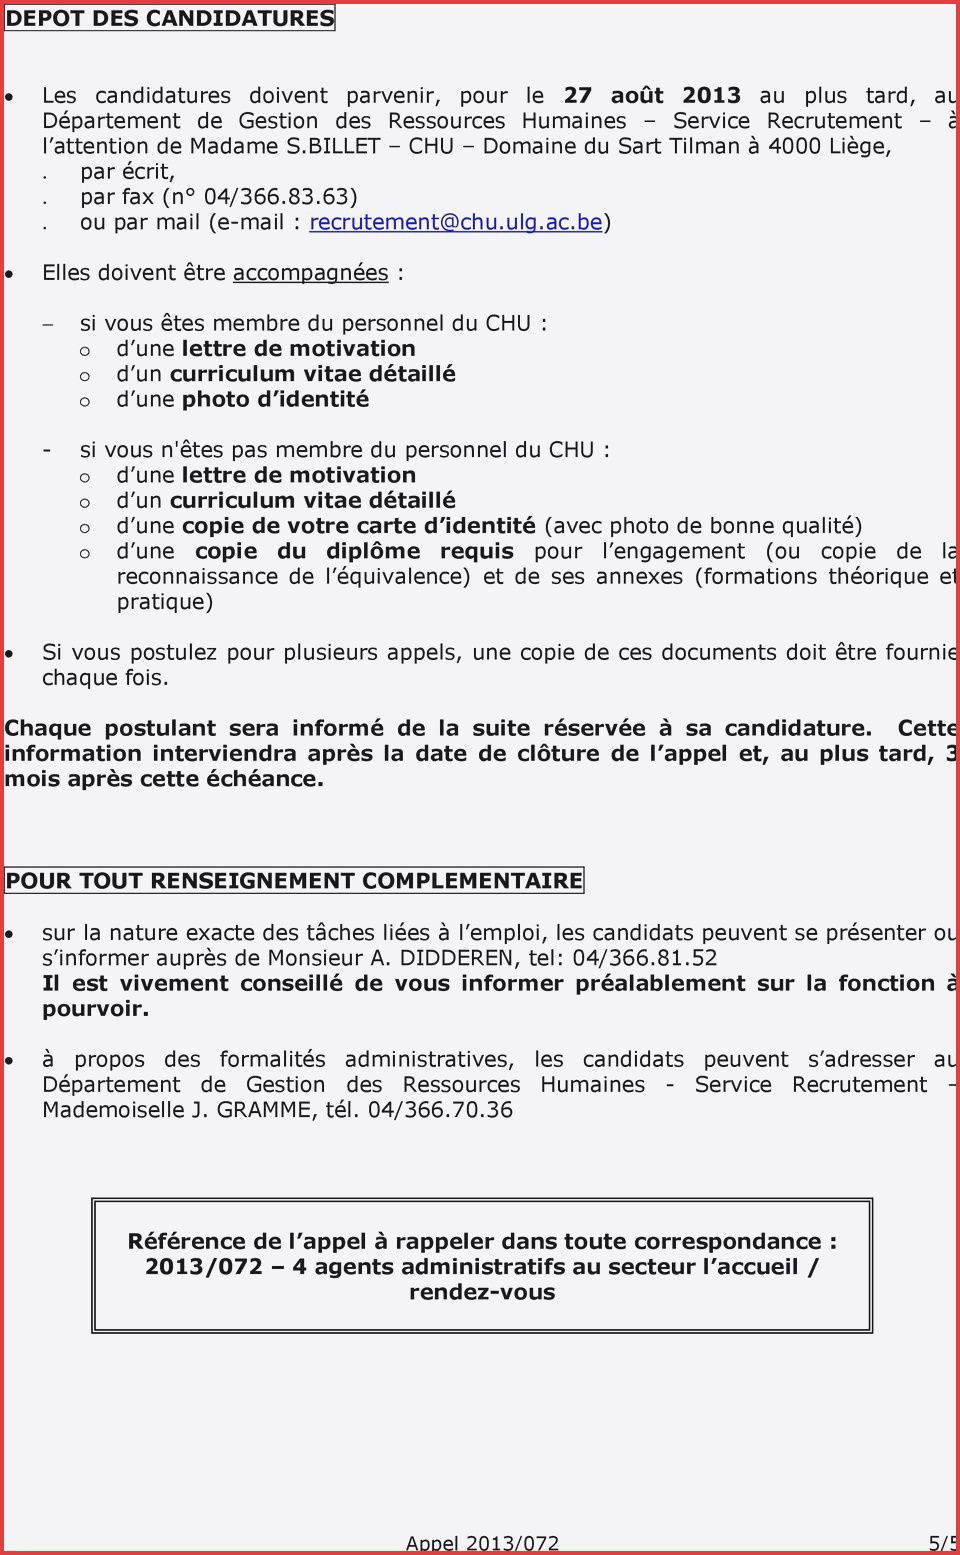 Lettre De Motivation Cabinet De Recrutement Exemple 54 Exemple Lettre De Motivation Mail